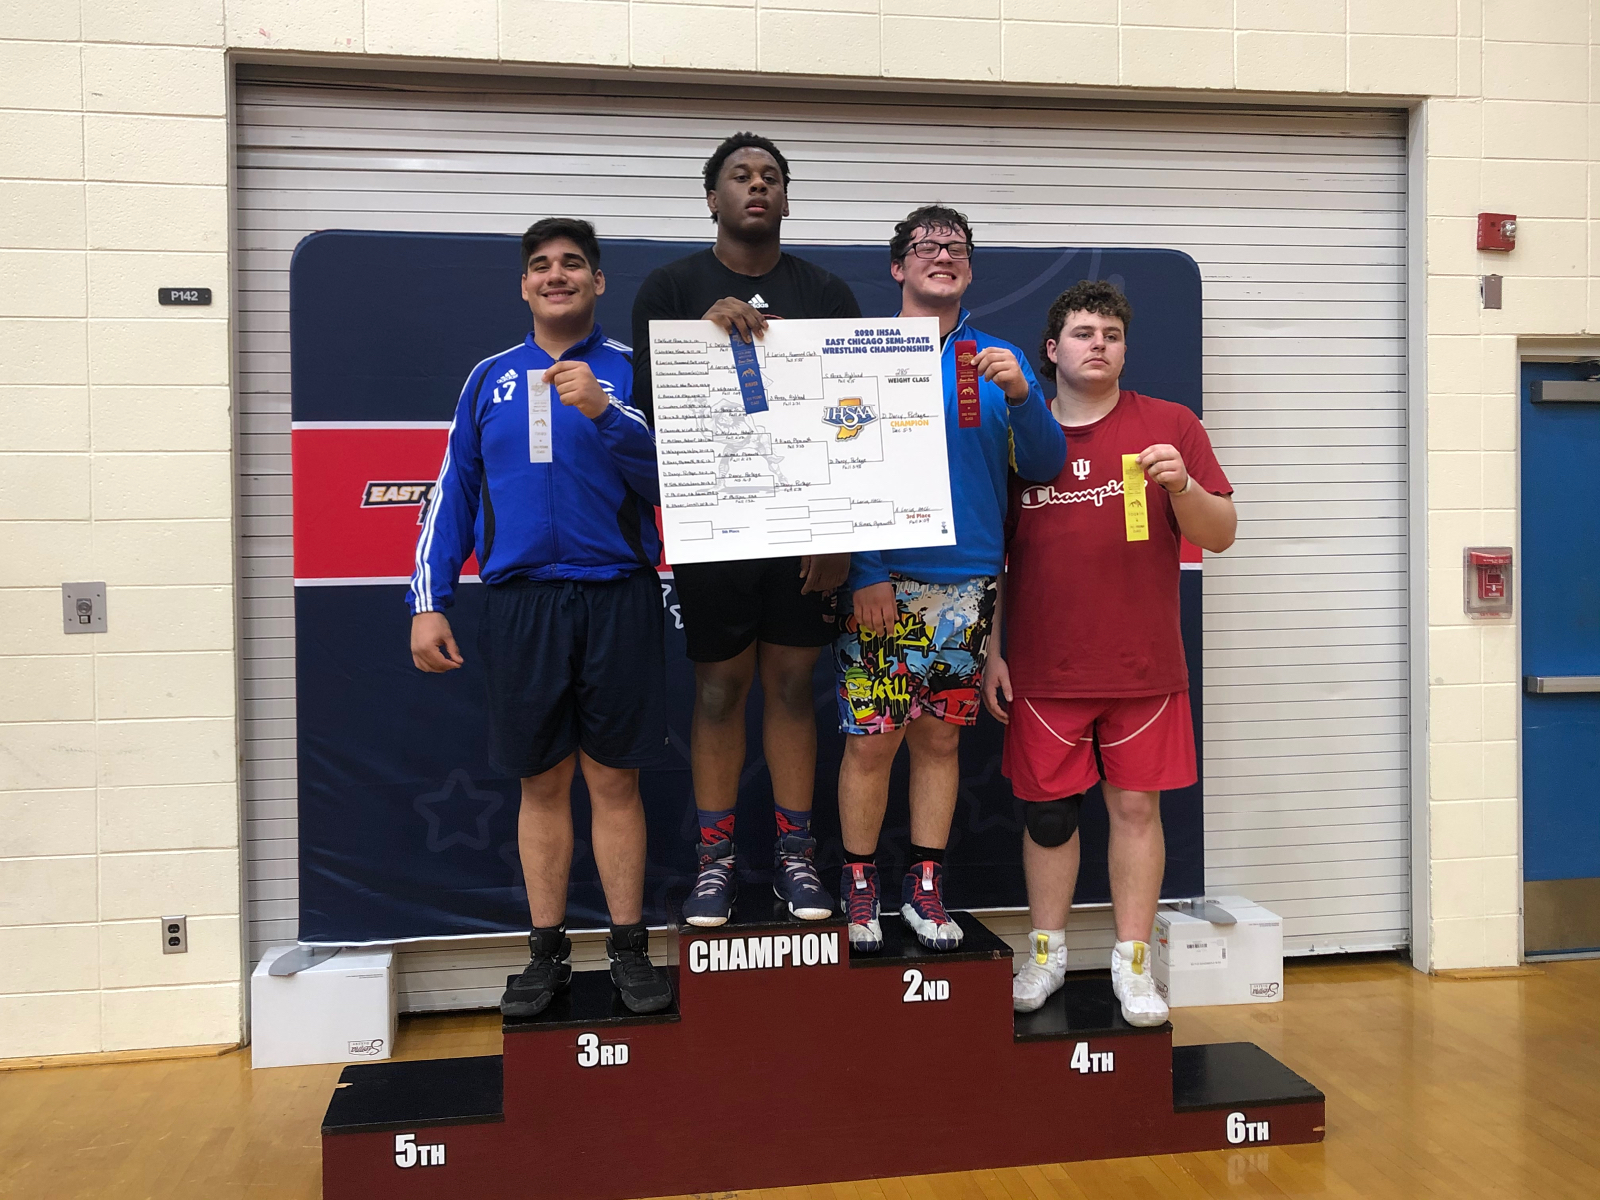 Congrats to Sr. Wrestler Andre Larios for placing 3rd at Semi-State and qualifying for State #PioneerOn #NorthStarGRC #WeWillLead #schk12 #15k